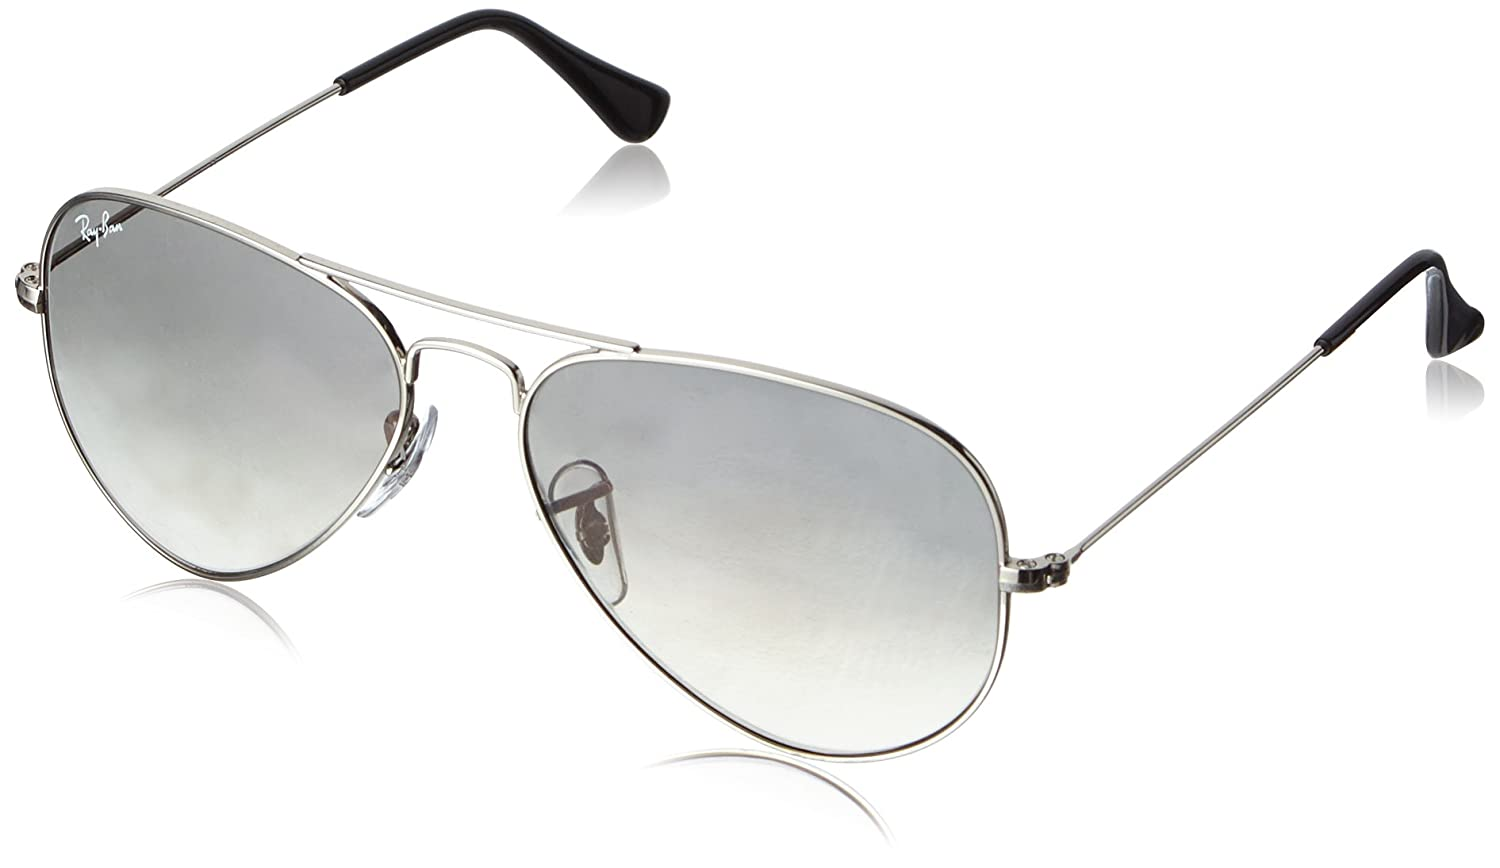 ray ban unisex rb3025 large metal  amazon: ray ban 0rb3025 aviator metal non polarized sunglasses, silver/ crystal grey gradient, 55mm: ray ban: clothing